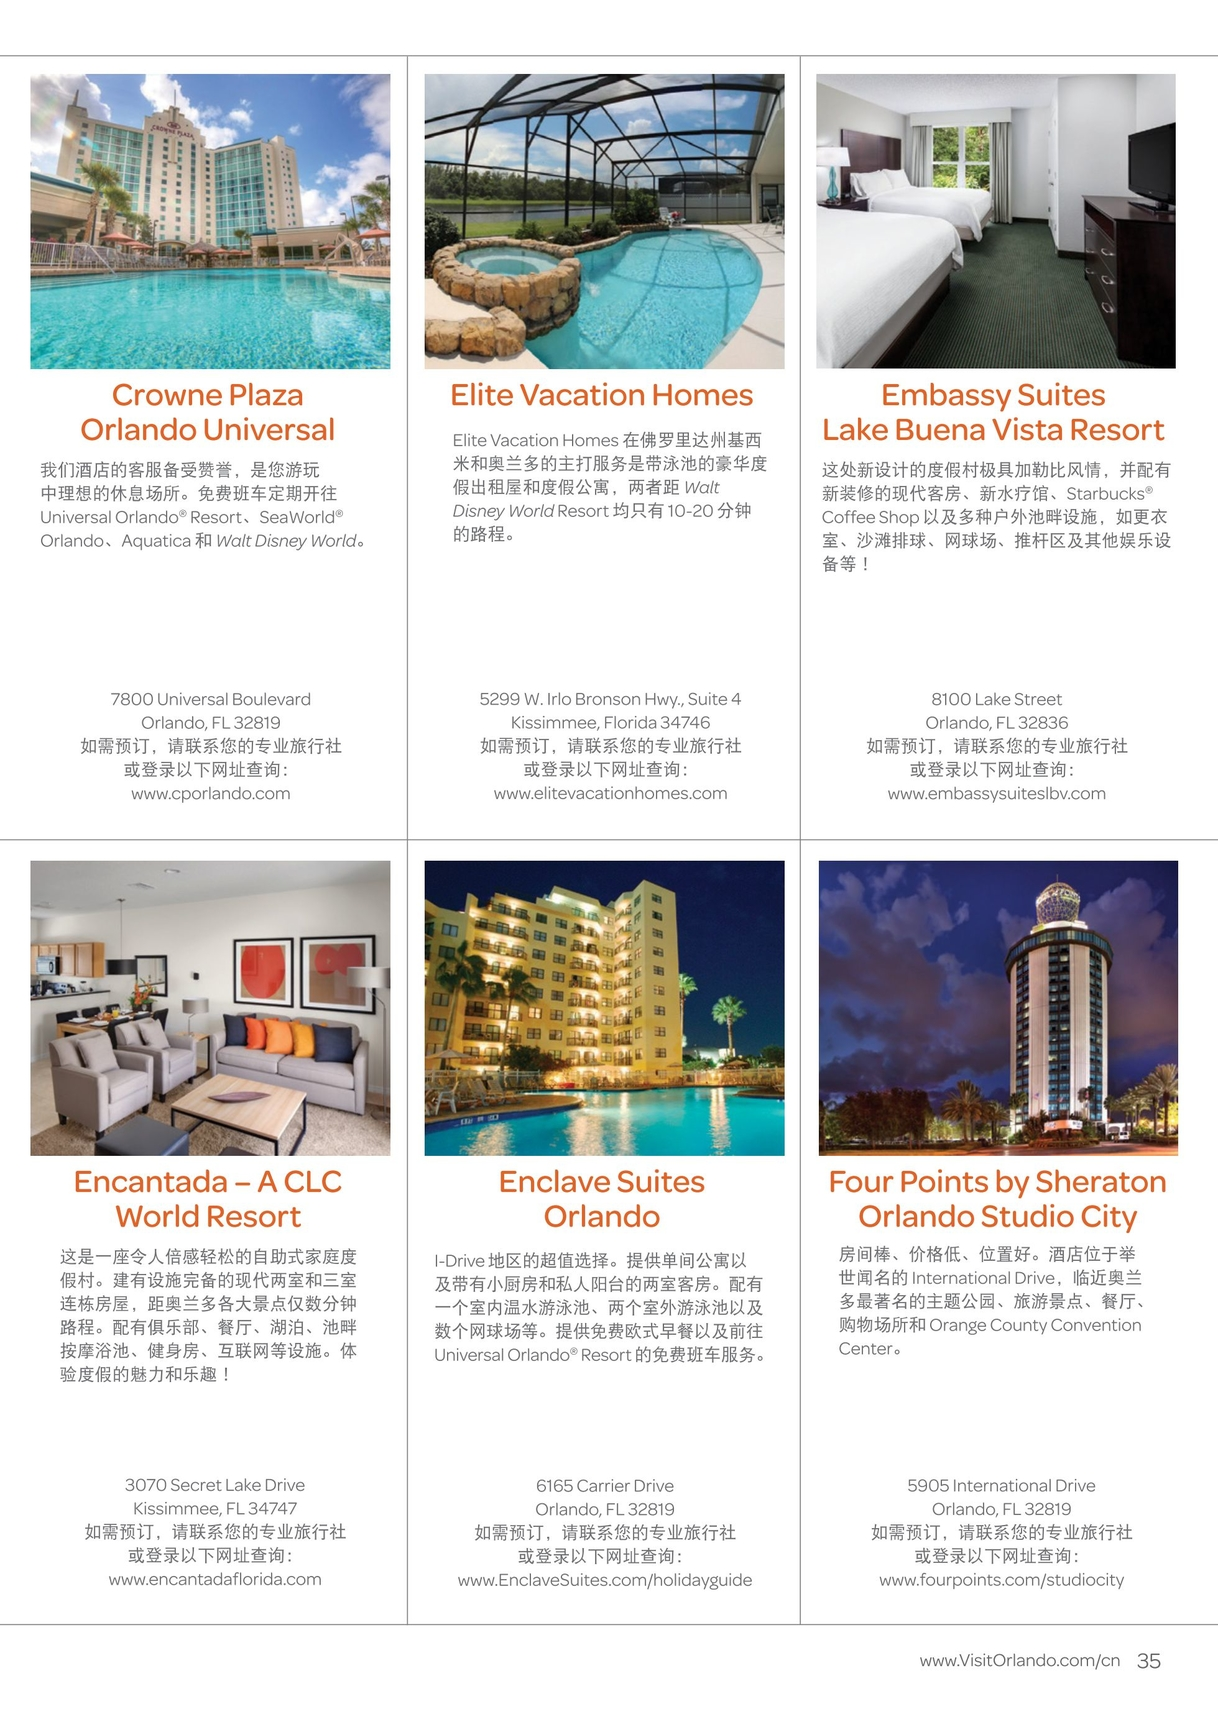 hotels with full kitchens in orlando florida paint colors for small international visitors guide 2015 chinese 奥兰多佛罗里达州配有完整厨房的酒店